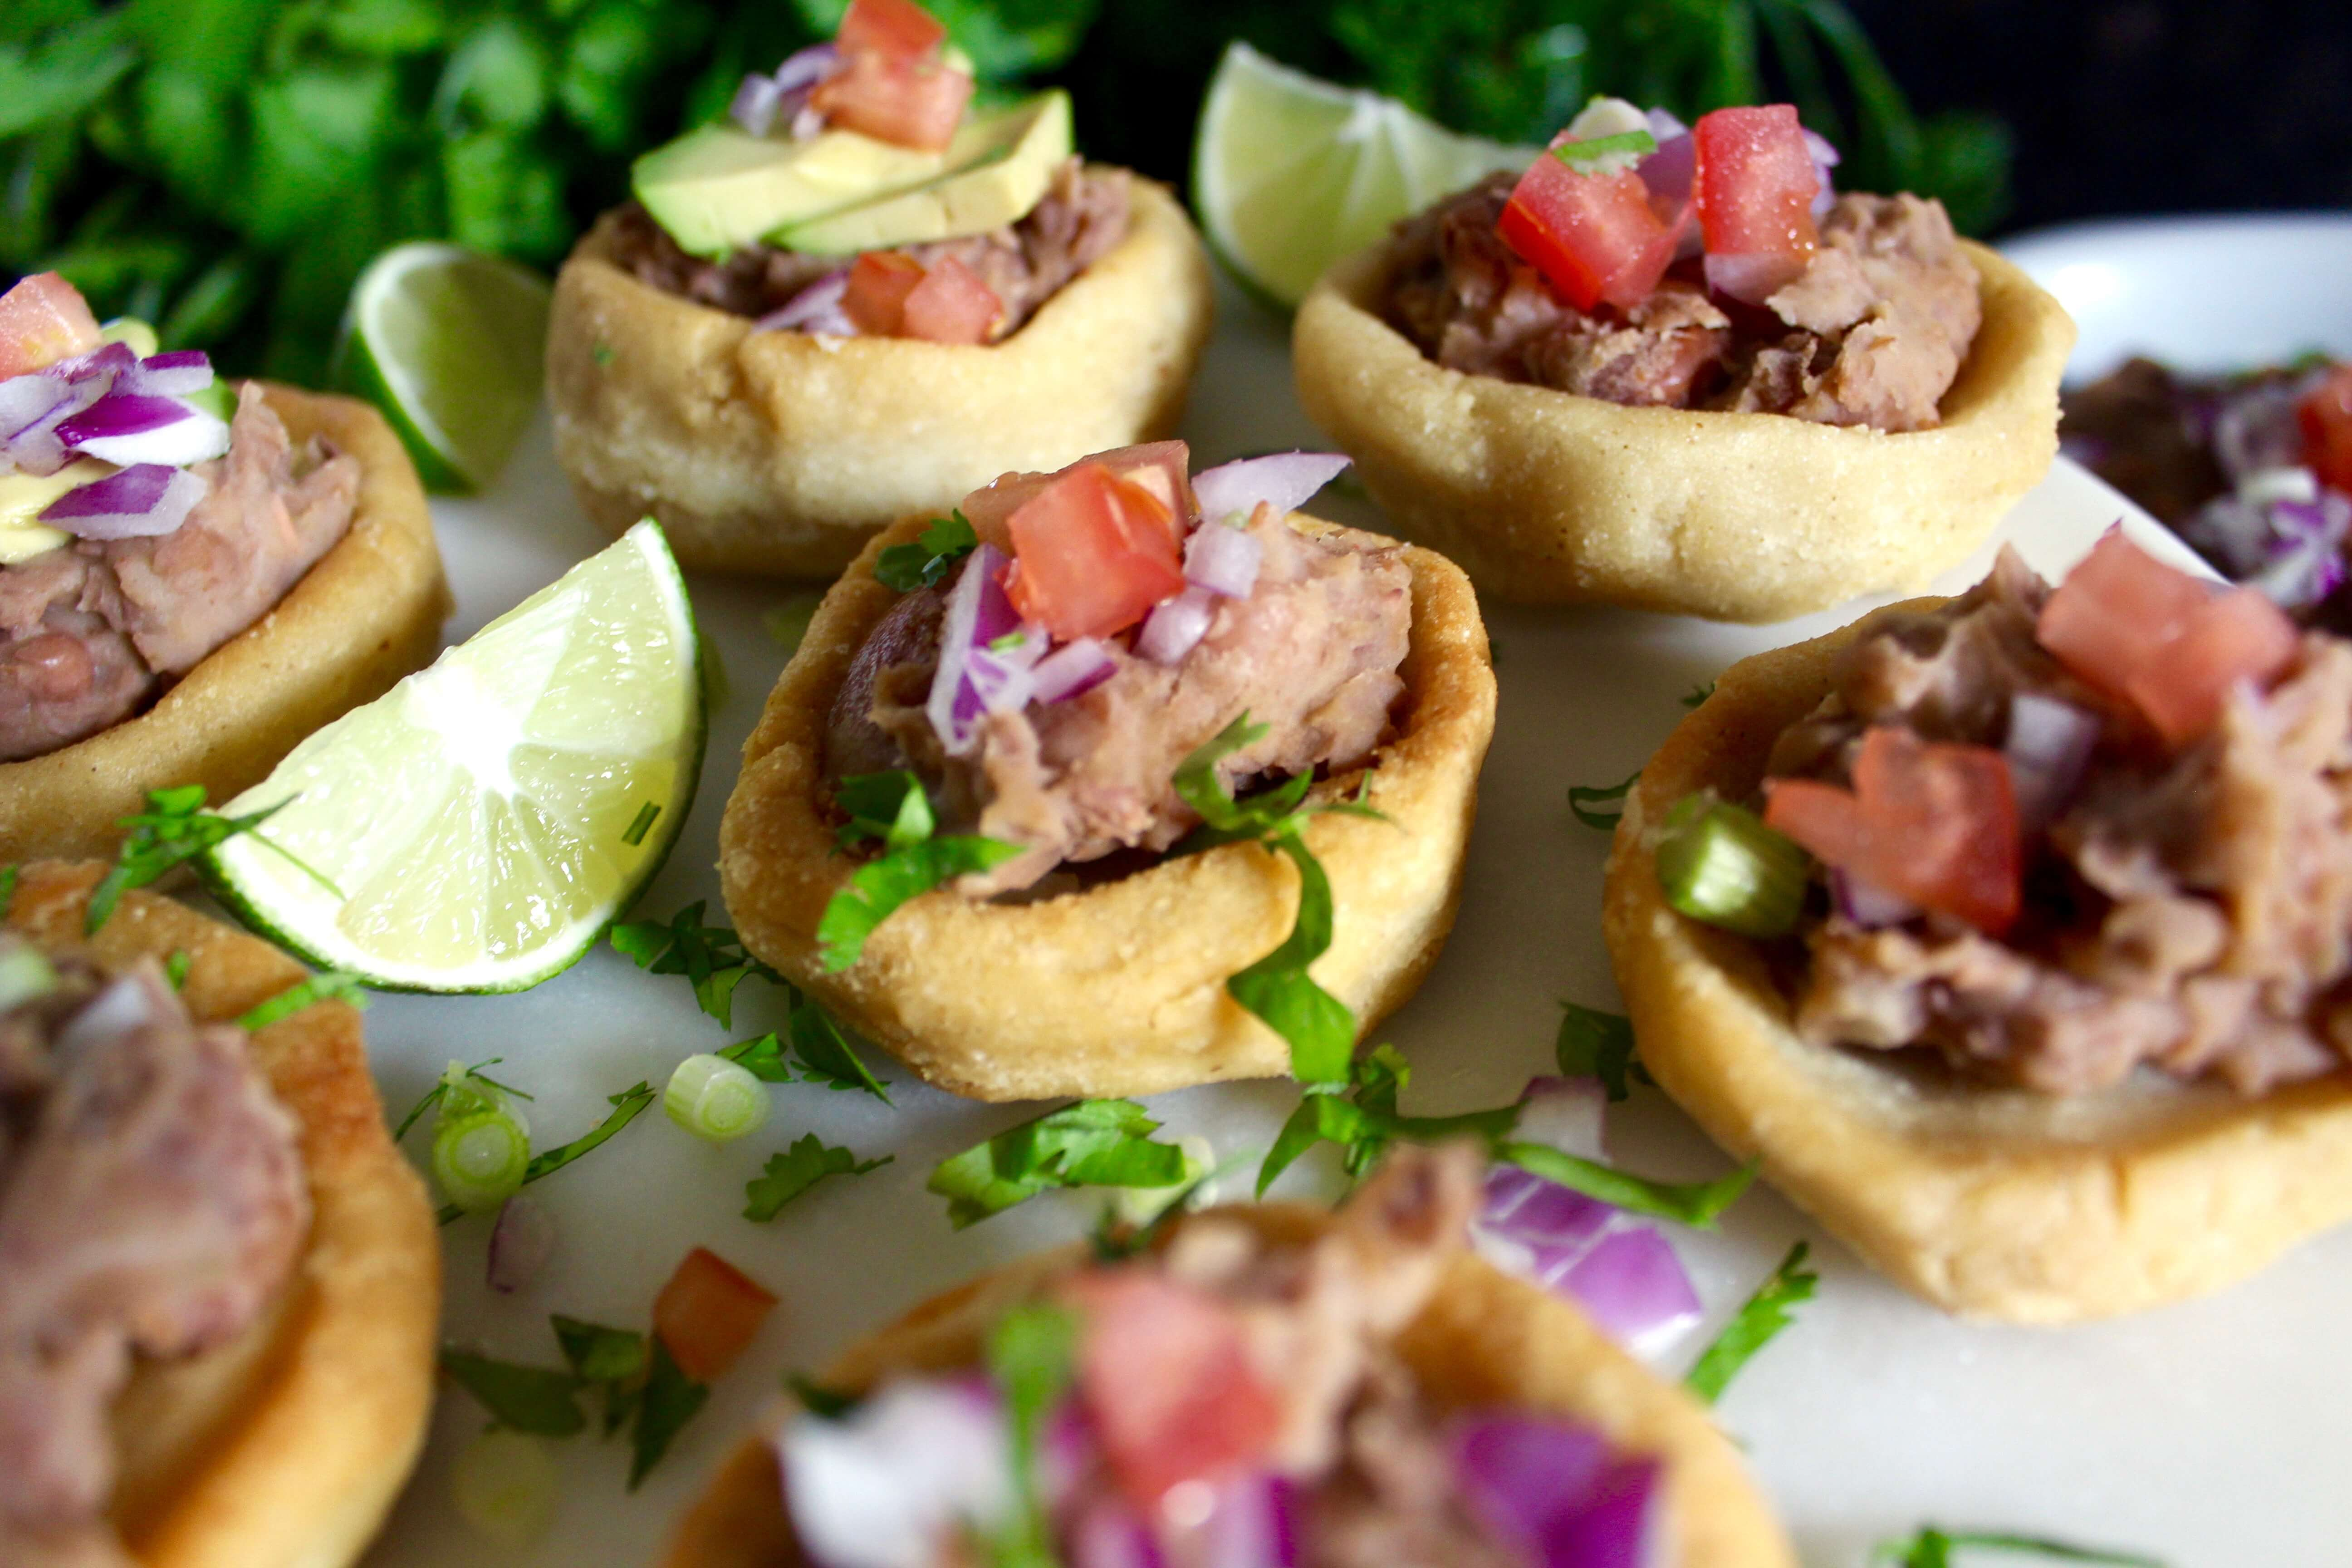 Gluten-Free Mexican Sopes (delicious fried corn cakes with toppings)